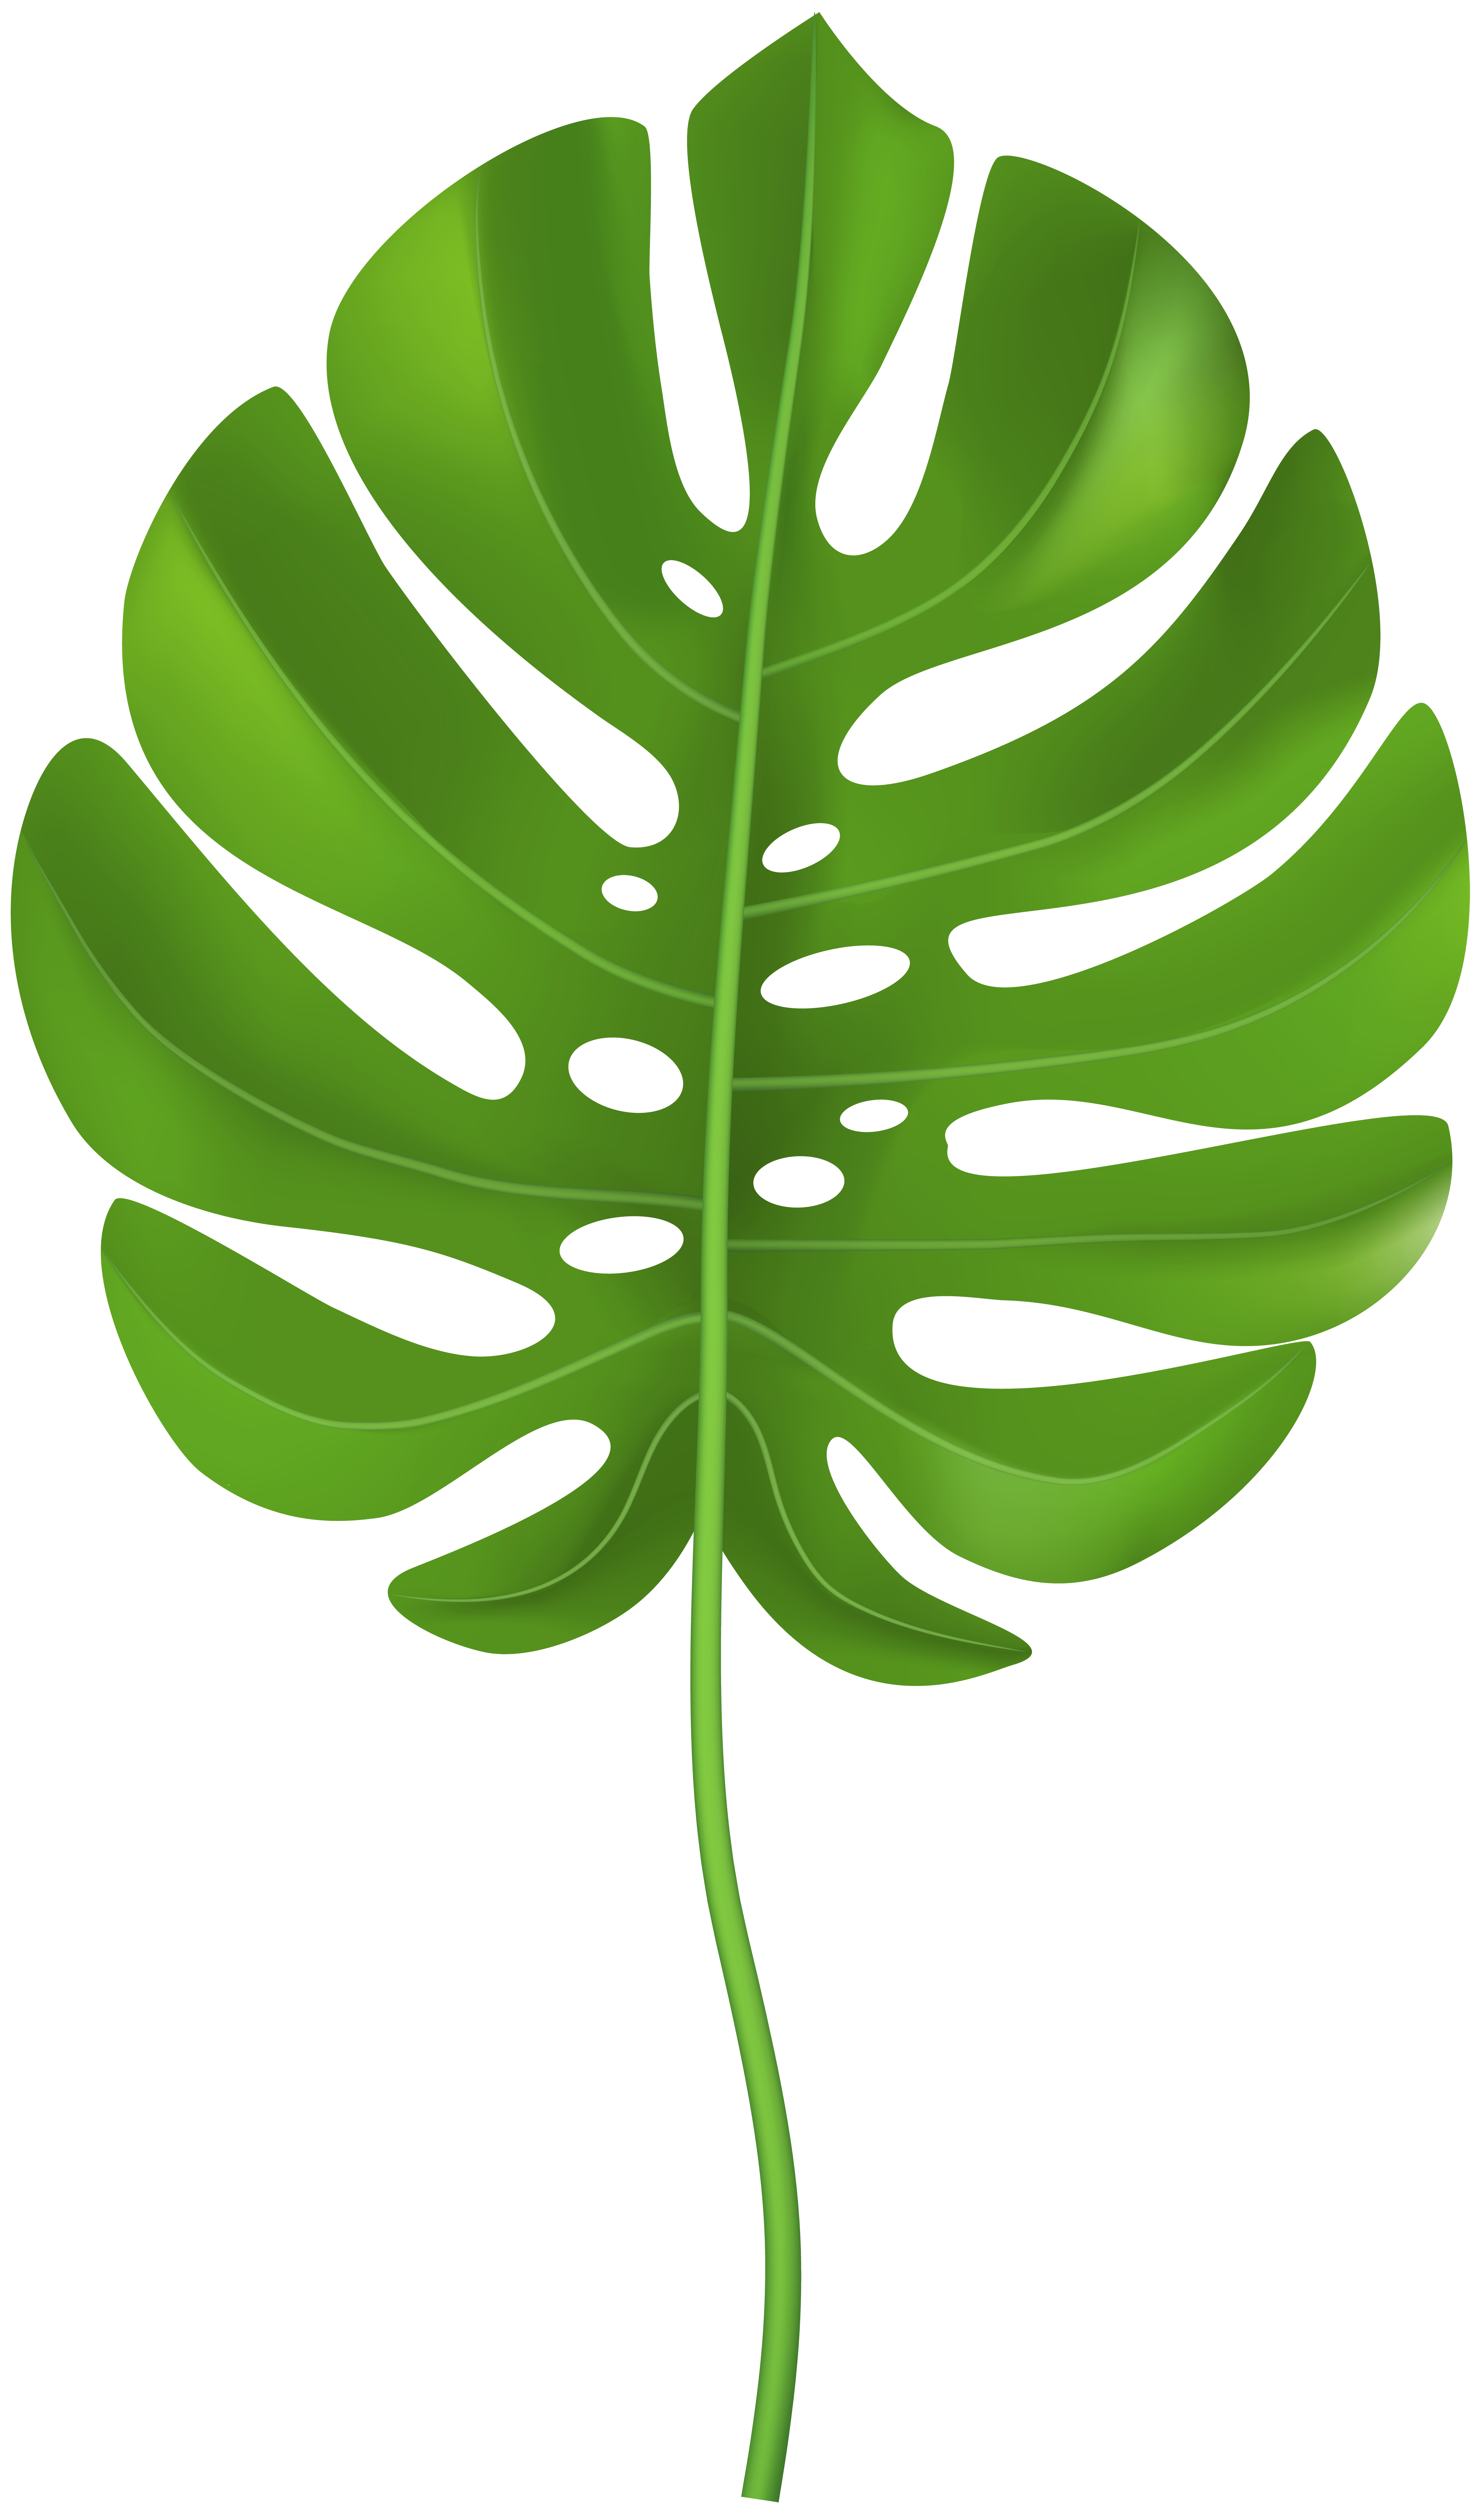 Free clipart of palm leaves. Tropical leaf transparent png